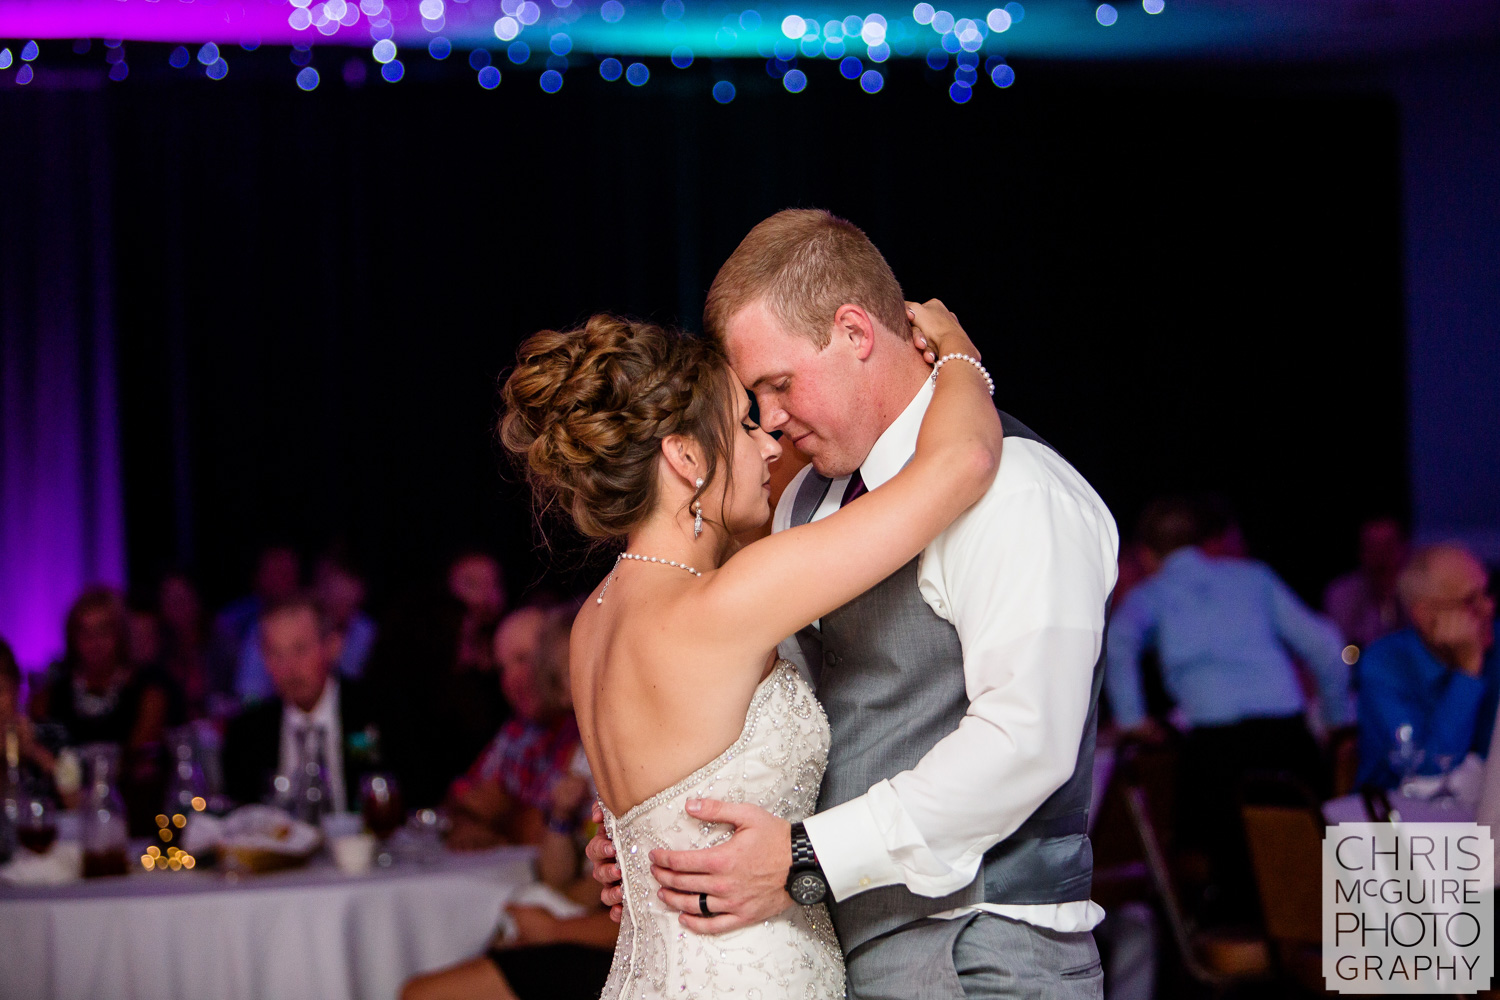 First Dance at Countryside Banquets Washington IL wedding